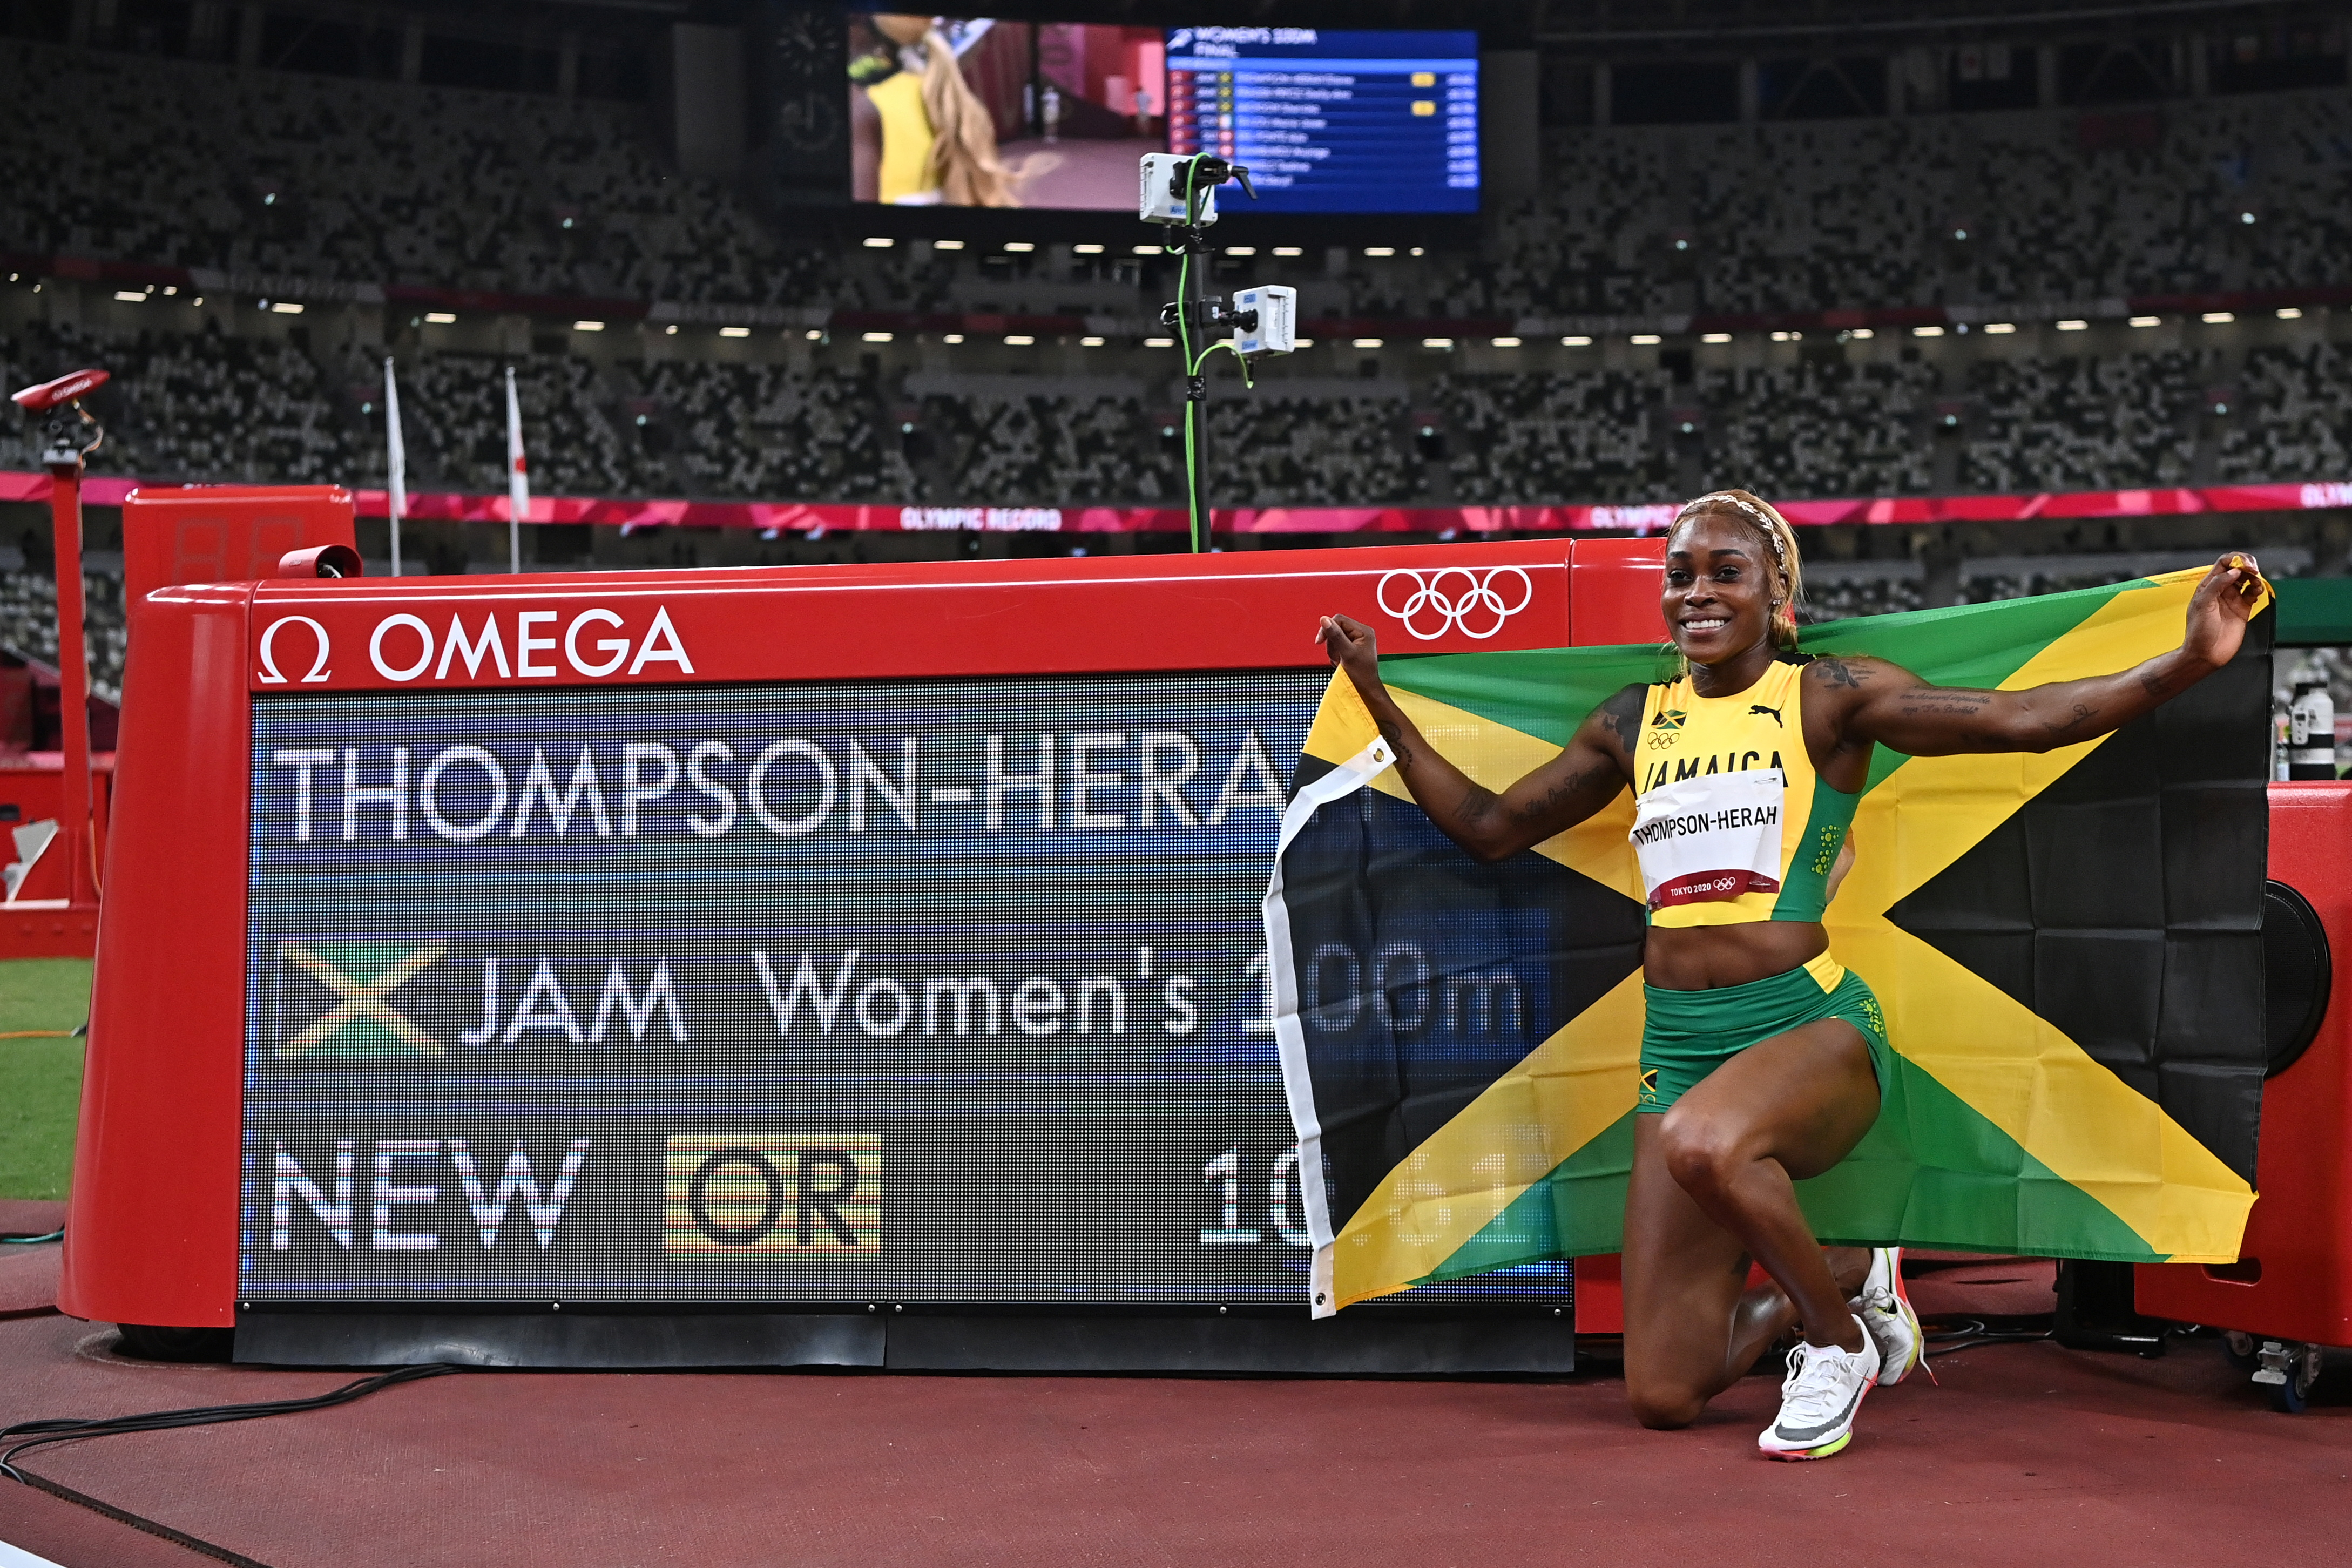 Tokyo 2020 Olympics - Athletics - Women's 100m - Final - OLS - Olympic Stadium, Tokyo, Japan - July 31, 2021. Gold medallist Elaine Thompson-Herah of Jamaica celebrates after winning and setting an Olympic Record Pool via Reuters/Ben Stansall